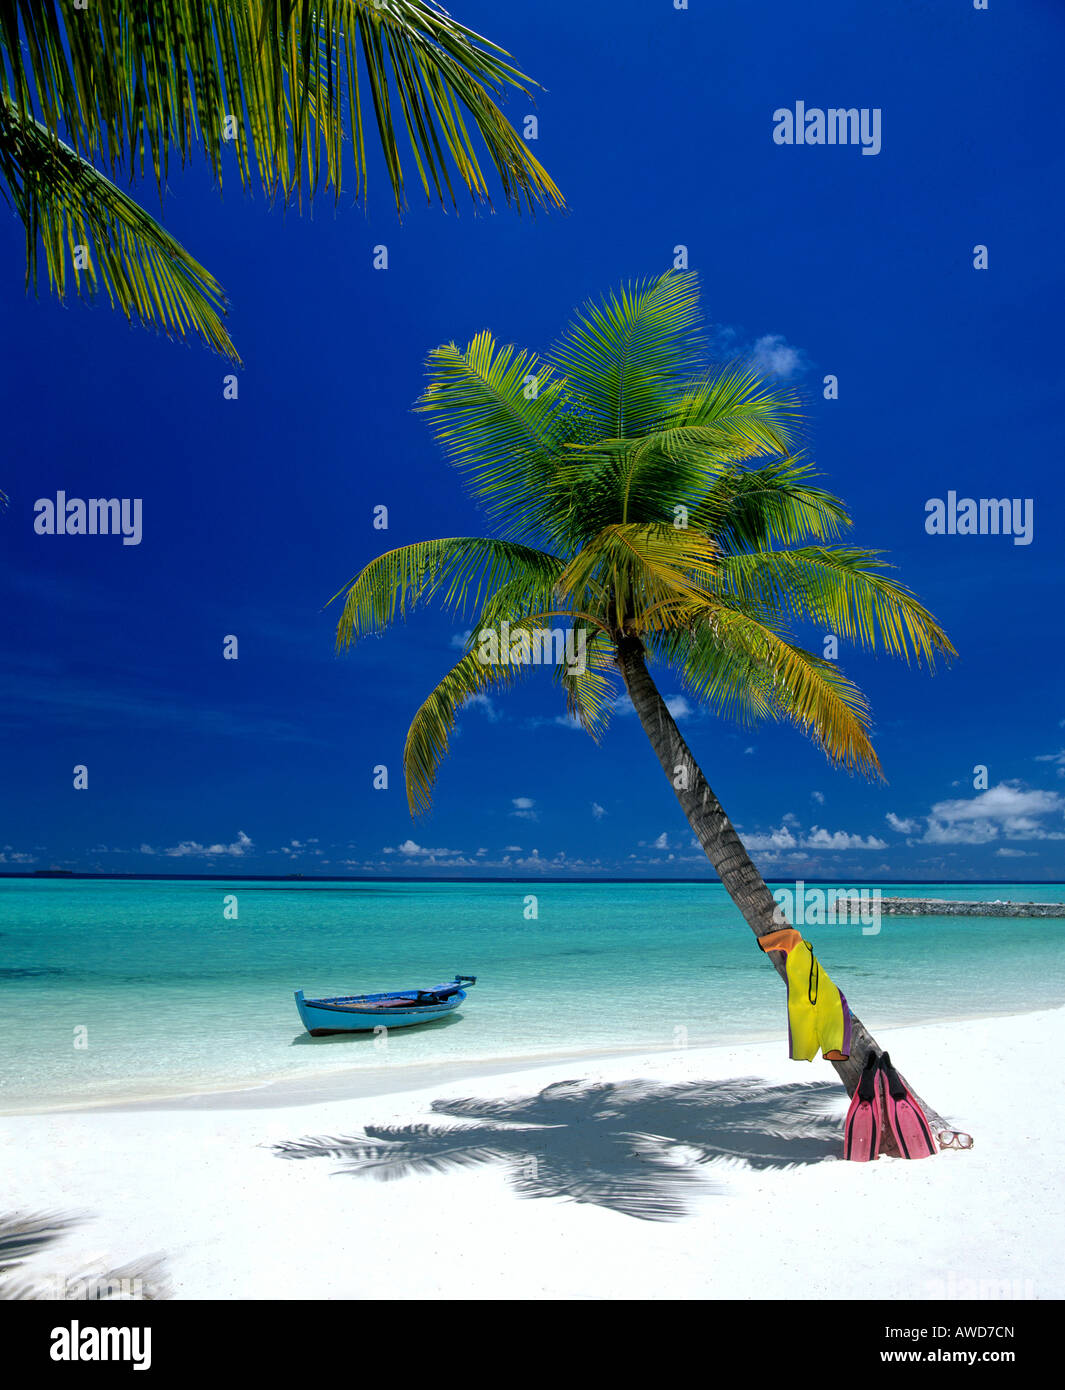 Palm tree, beach, snorkeling gear and boat, Maldives, Indian Ocean - Stock Image